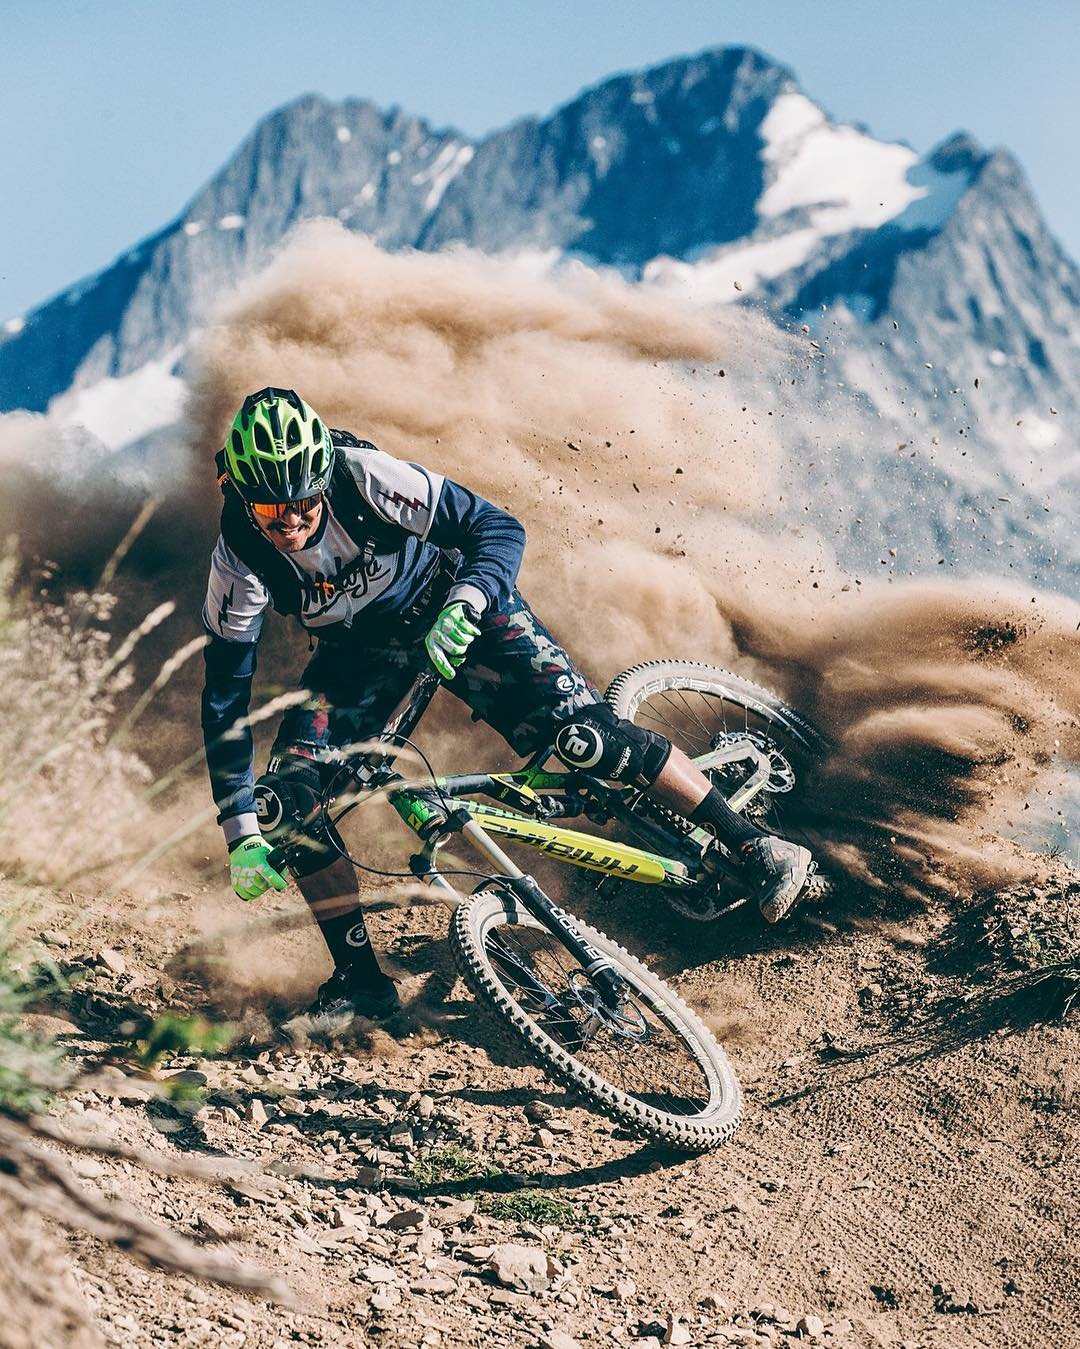 Awesome shot by Martin Erd Photographer of @tschugg23 getting sideways on his #heet ! #MTB #DH #enduro #mountainbike #shred #Haibike #bikes #mountains #srsuntour #ride100percent